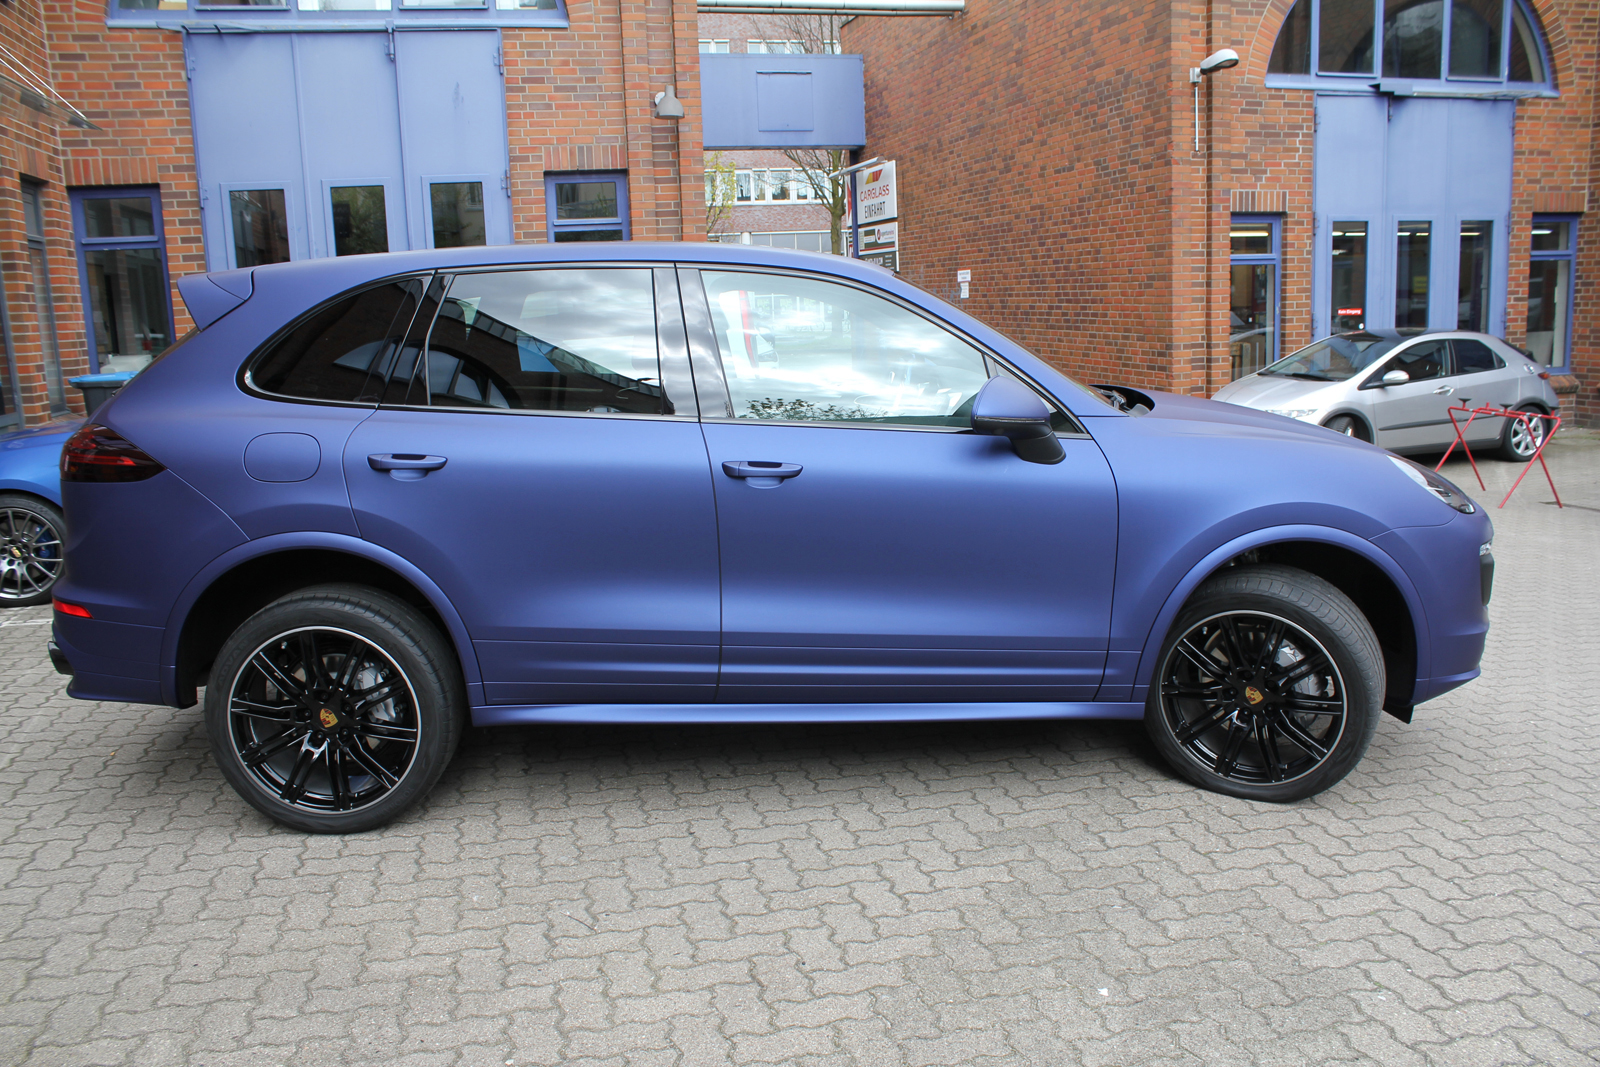 PORSCHE_CAYENNE_FOLIERUNG_MIDNIGHT_BLUE_MATT_METALLIC_02